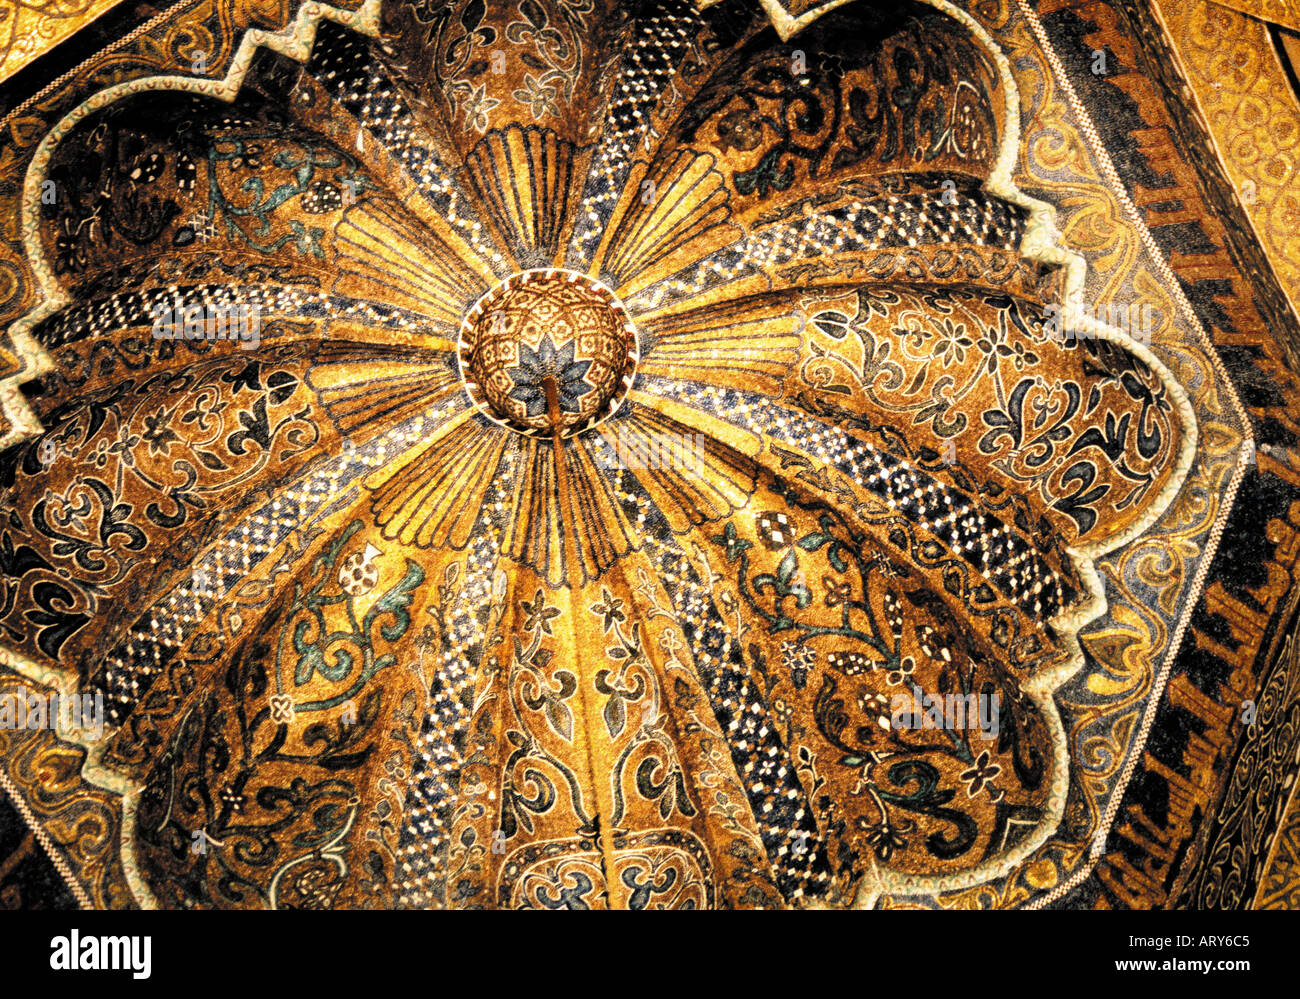 Mosque Detail: Spain Cordoba Detail Of A Ceiling In The Great Mosque Of